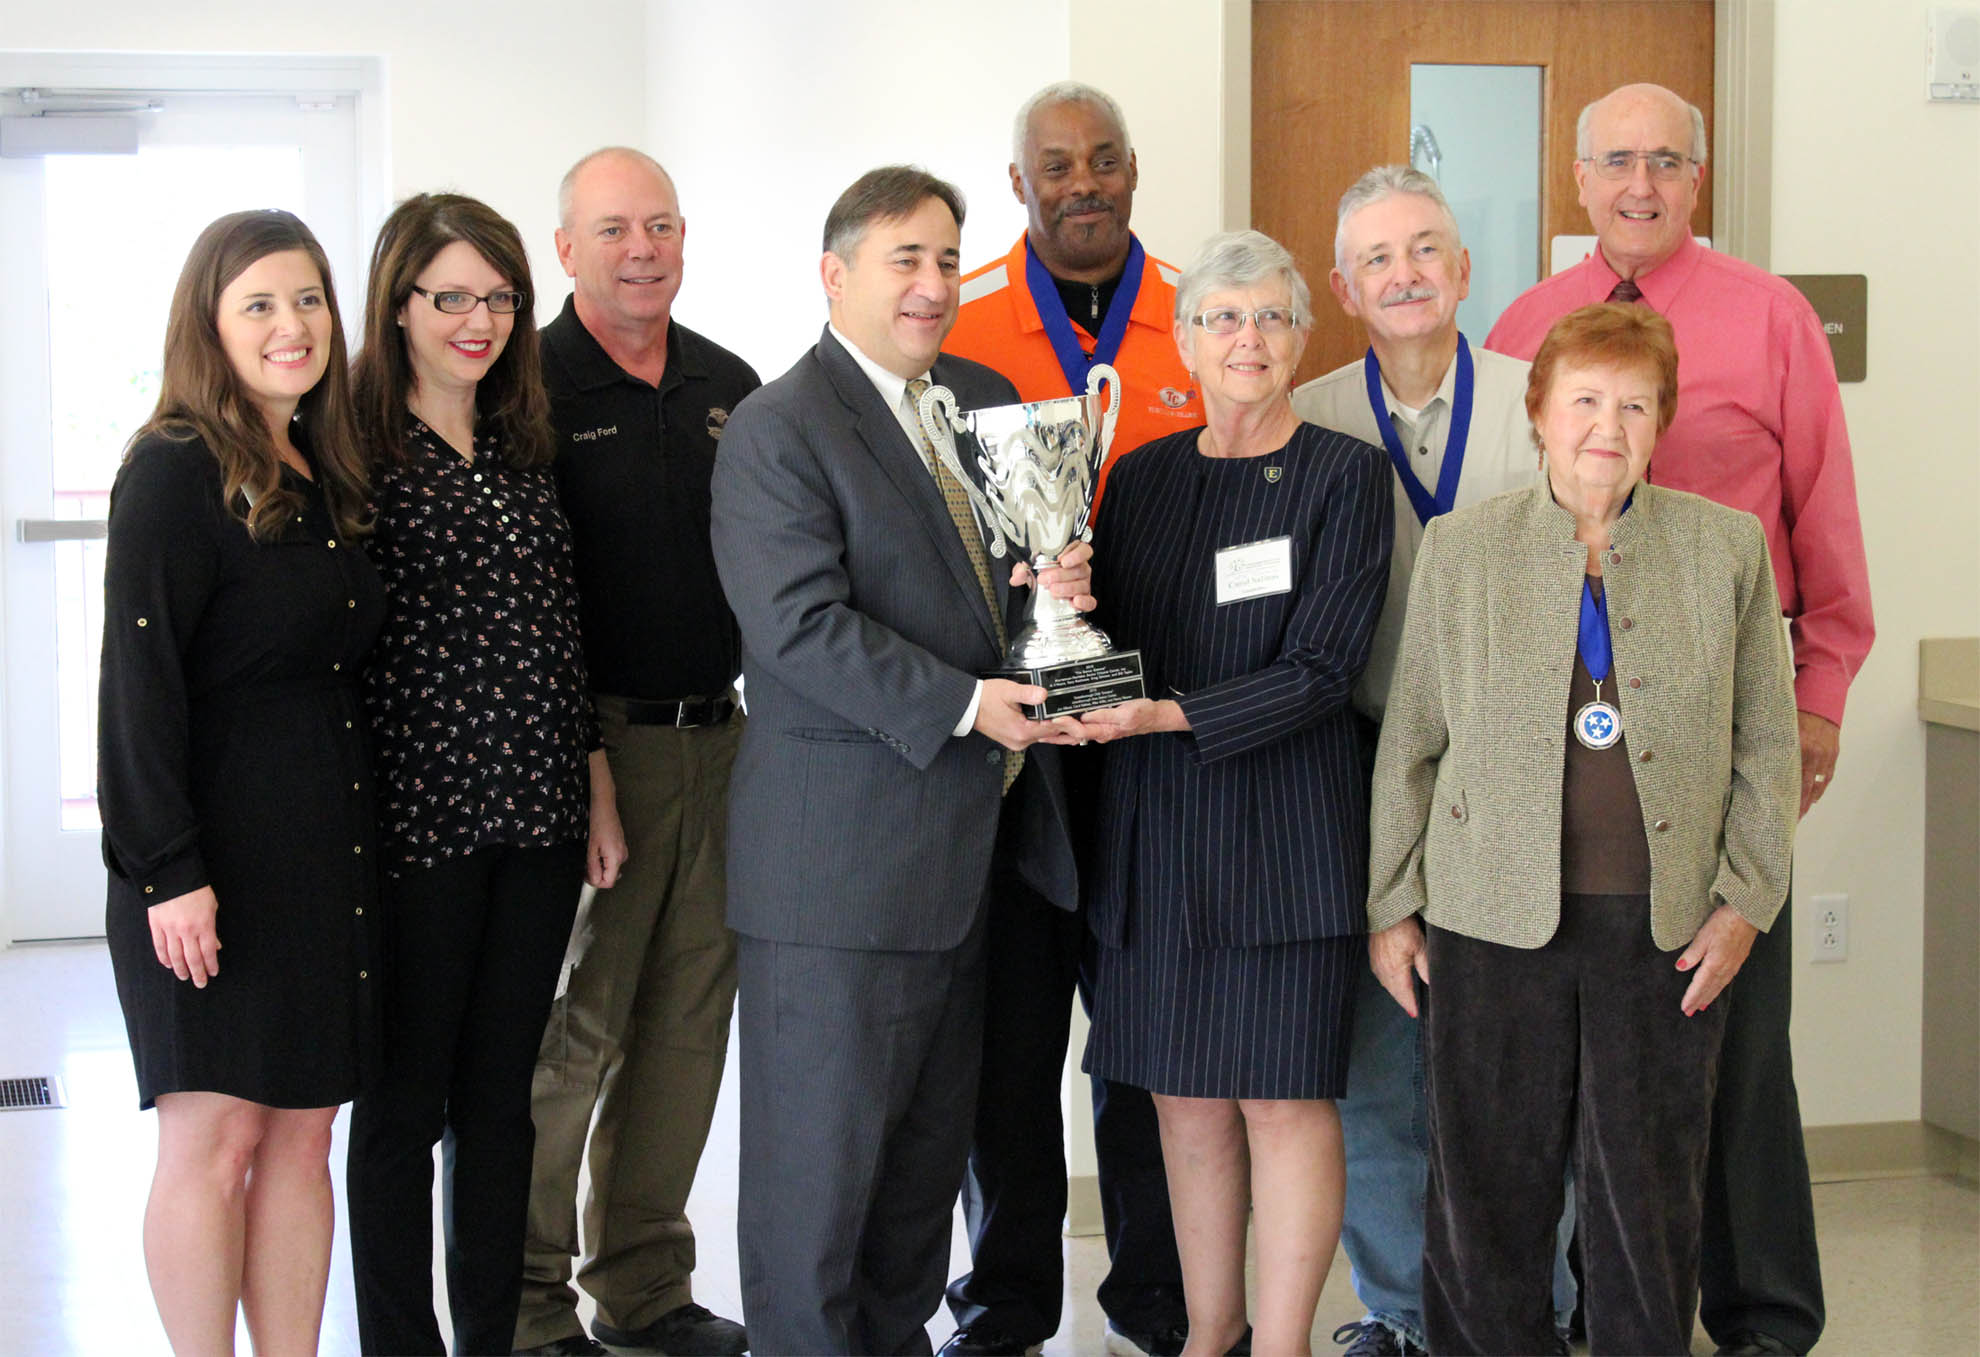 The 2016 Tennessee Senior Brain Games trophy presentation at the Jonesborough Senior Center.